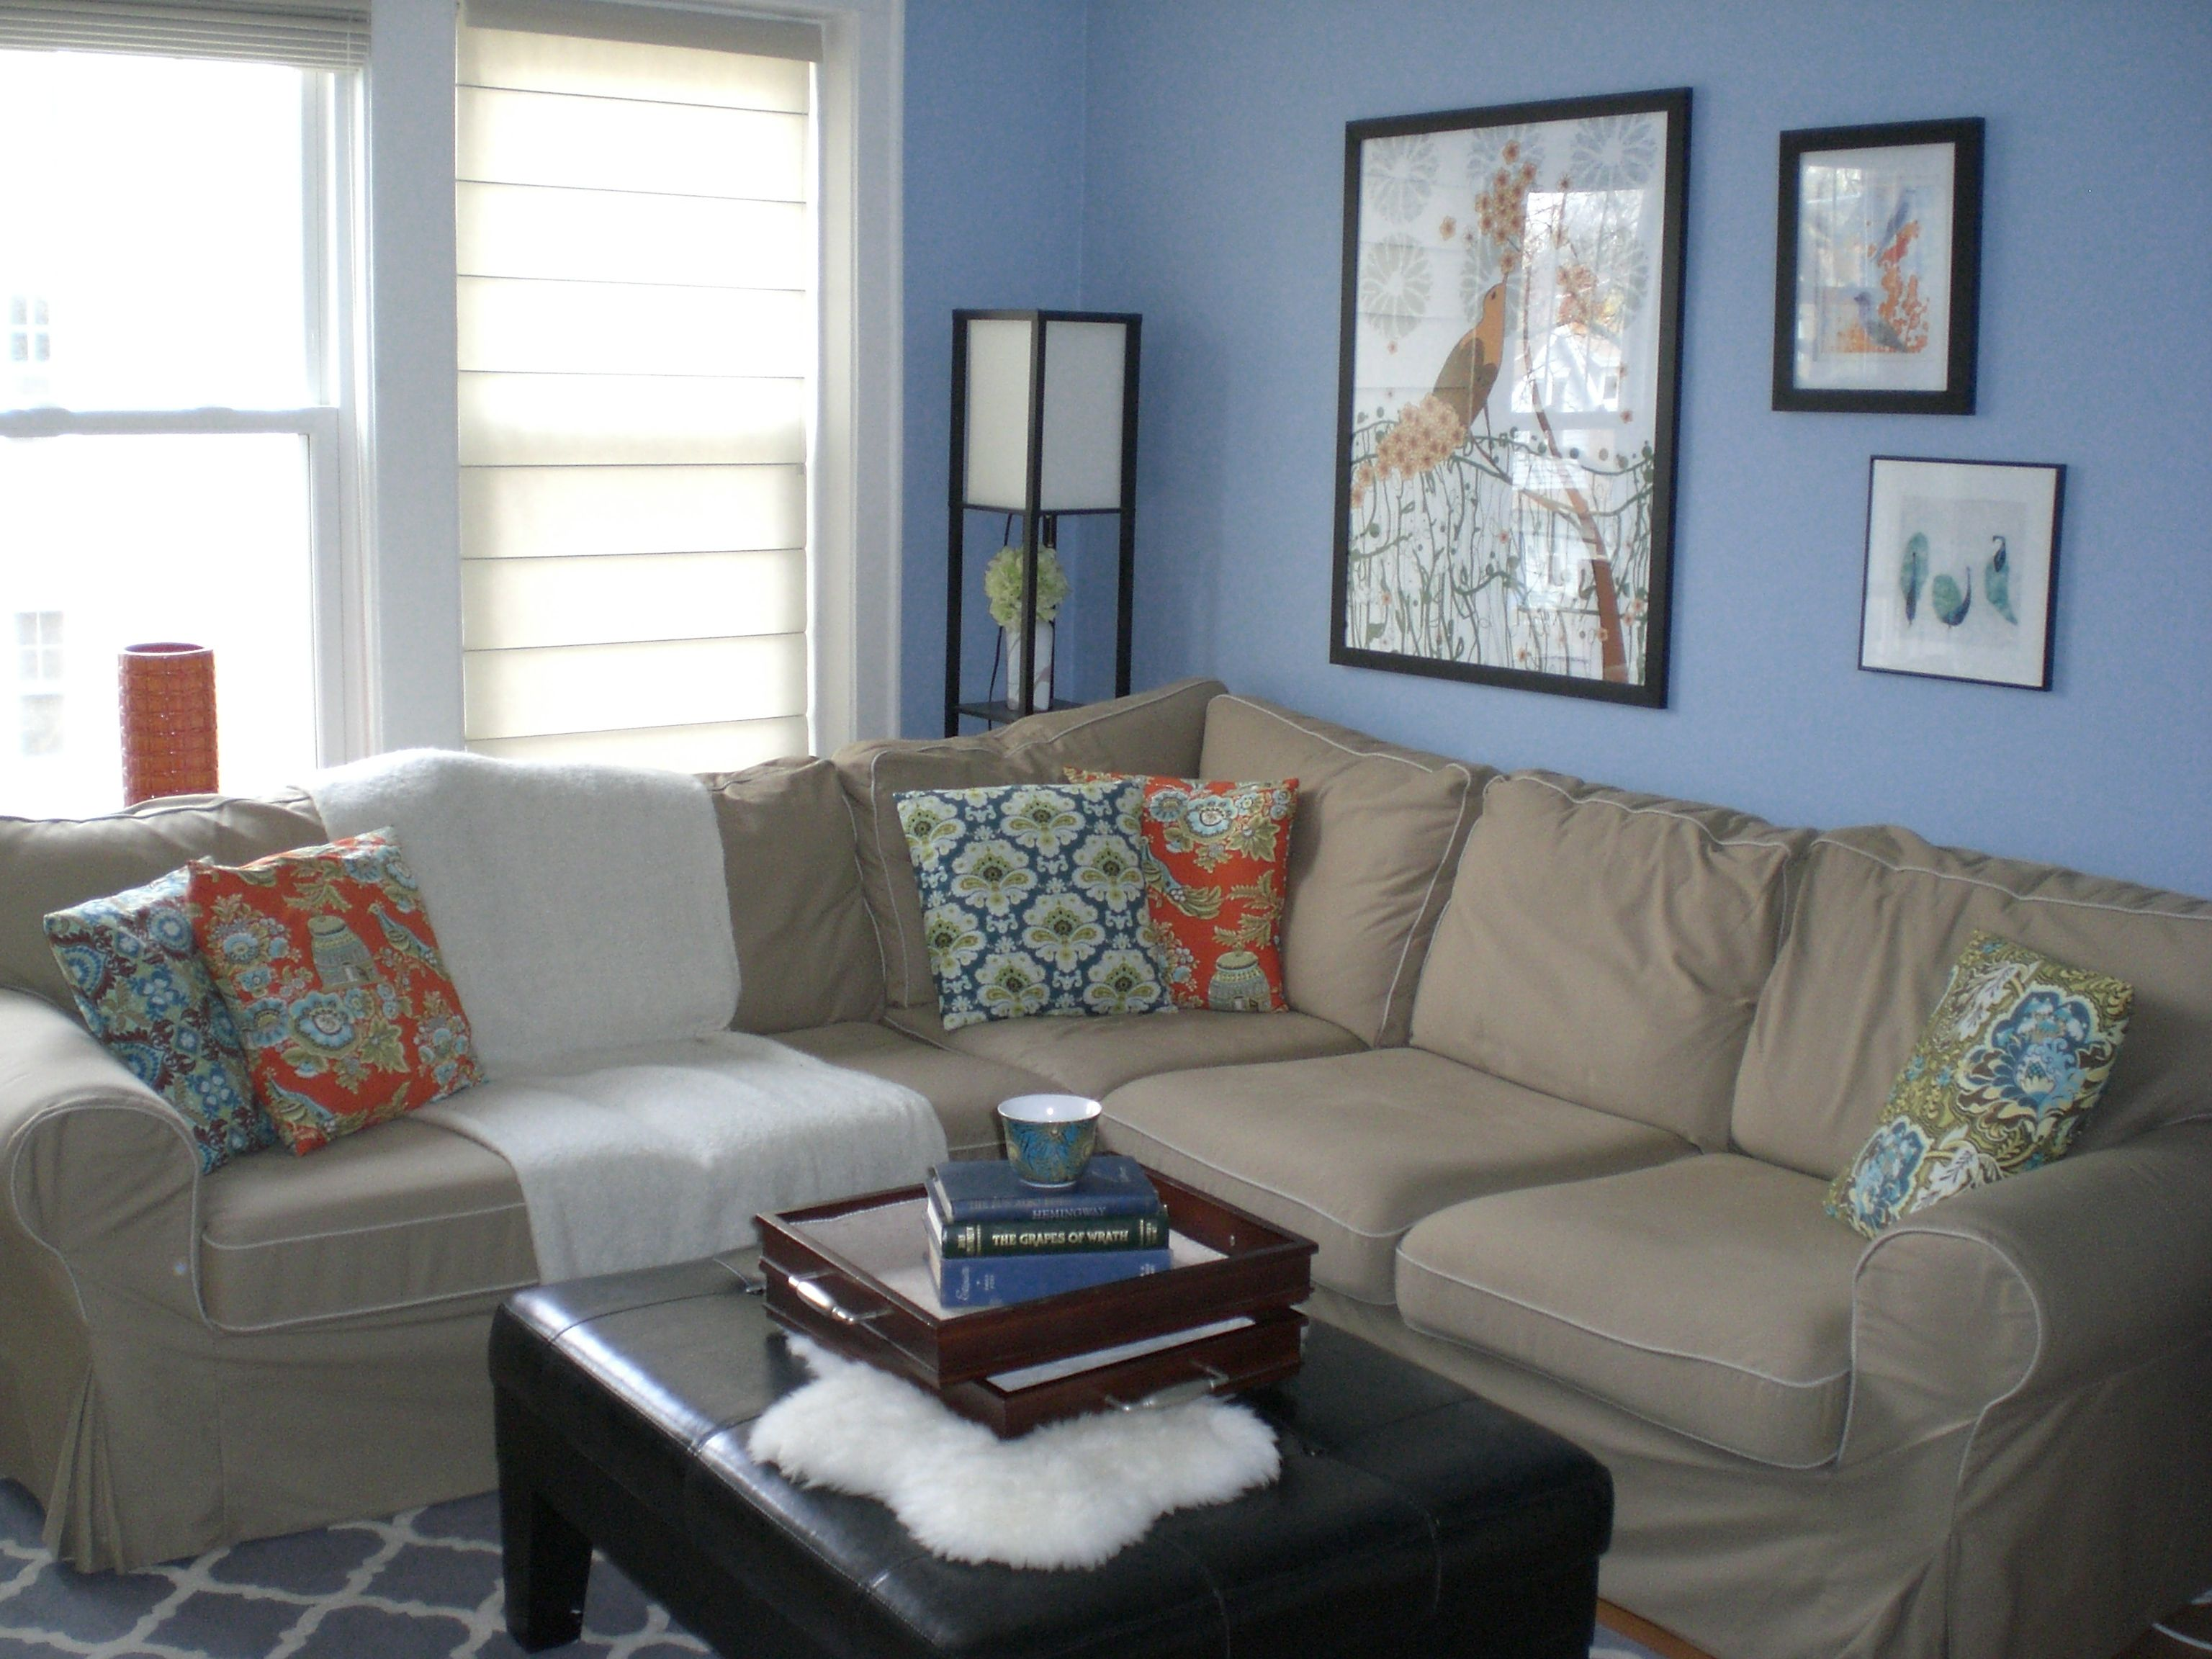 Blue Paint Colors For Living Room light blue paint colors for living room xrkotdh | living room